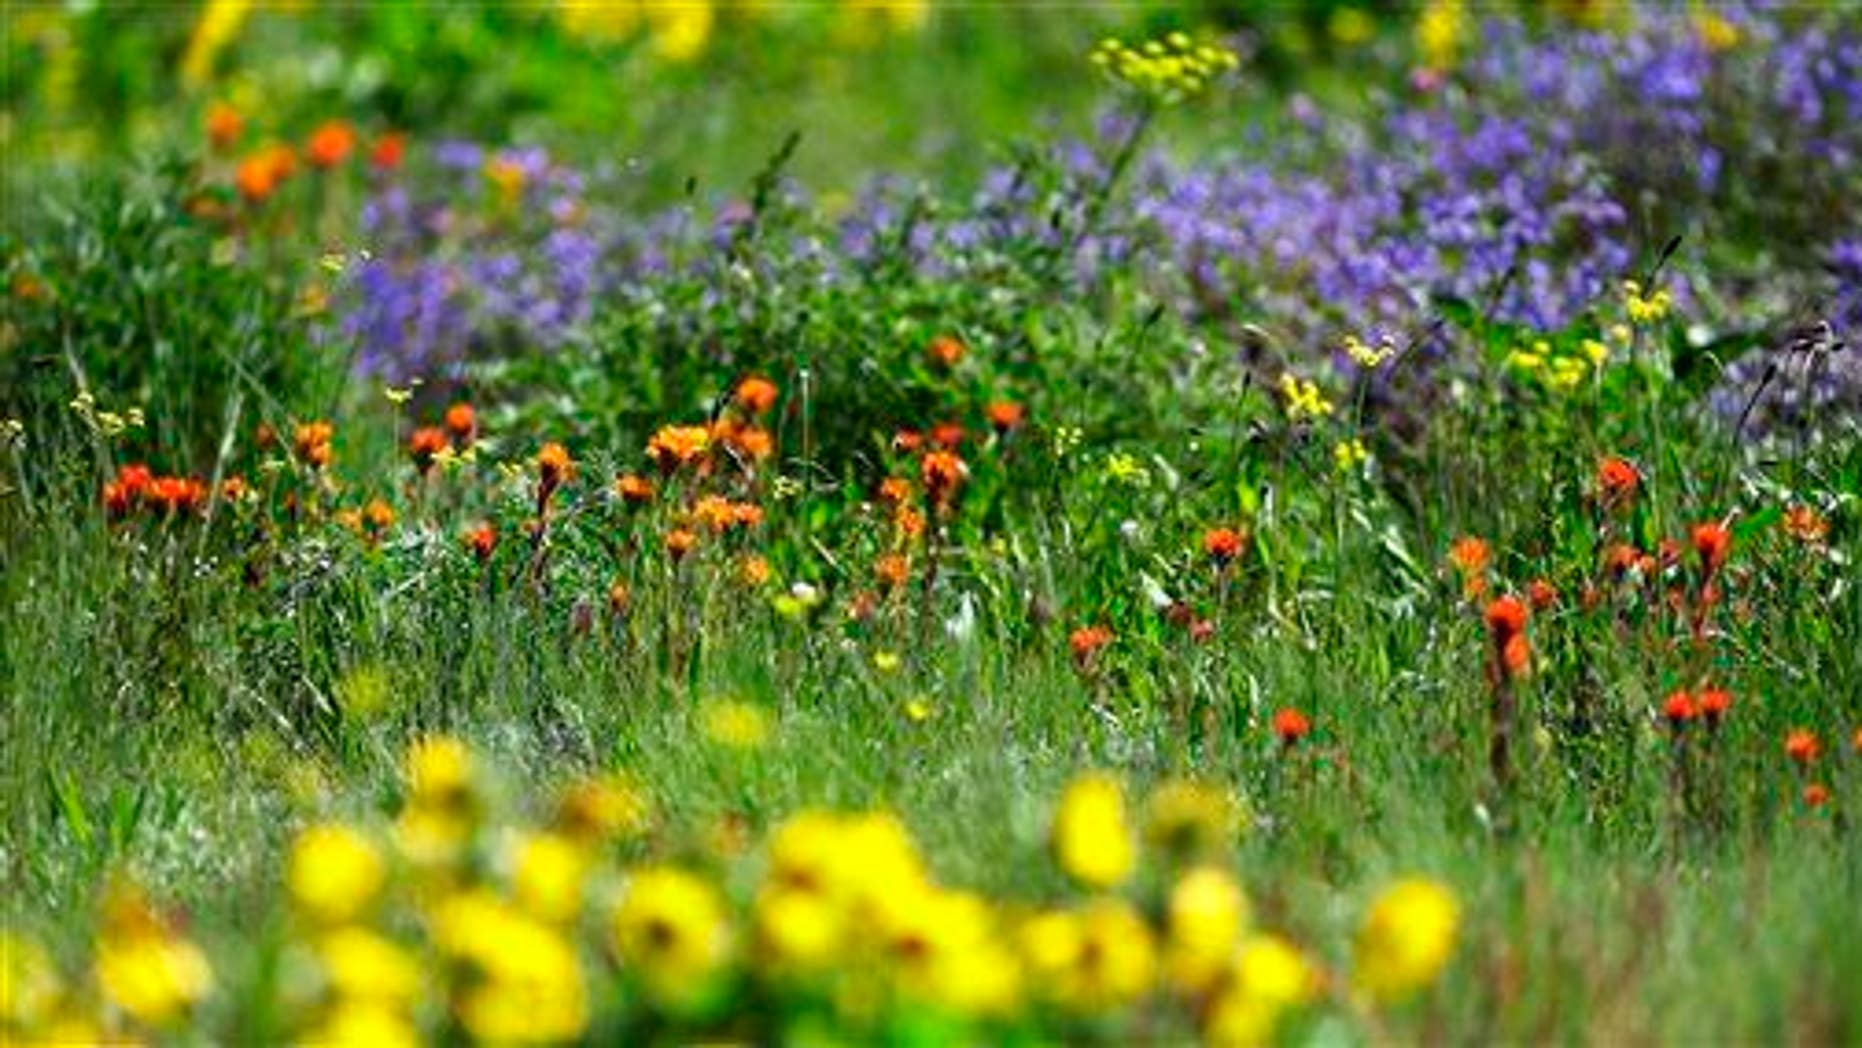 In this photo taken May 7, 2014, colorful flowers grow in a prairie area at Joint Base Lewis-McChord, Wash.